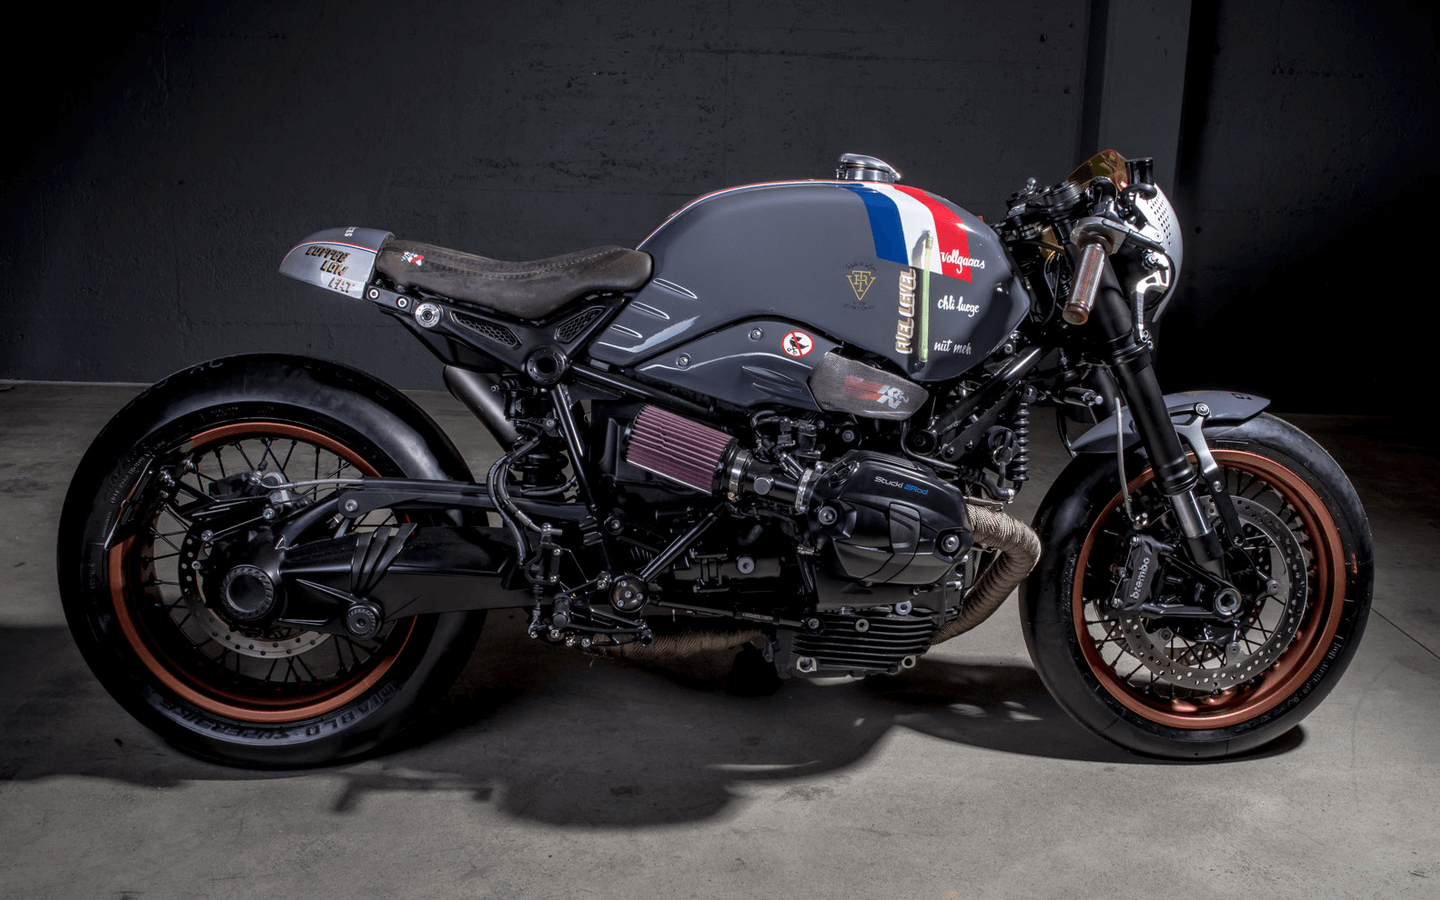 bmw r ninet custom by vtr customs